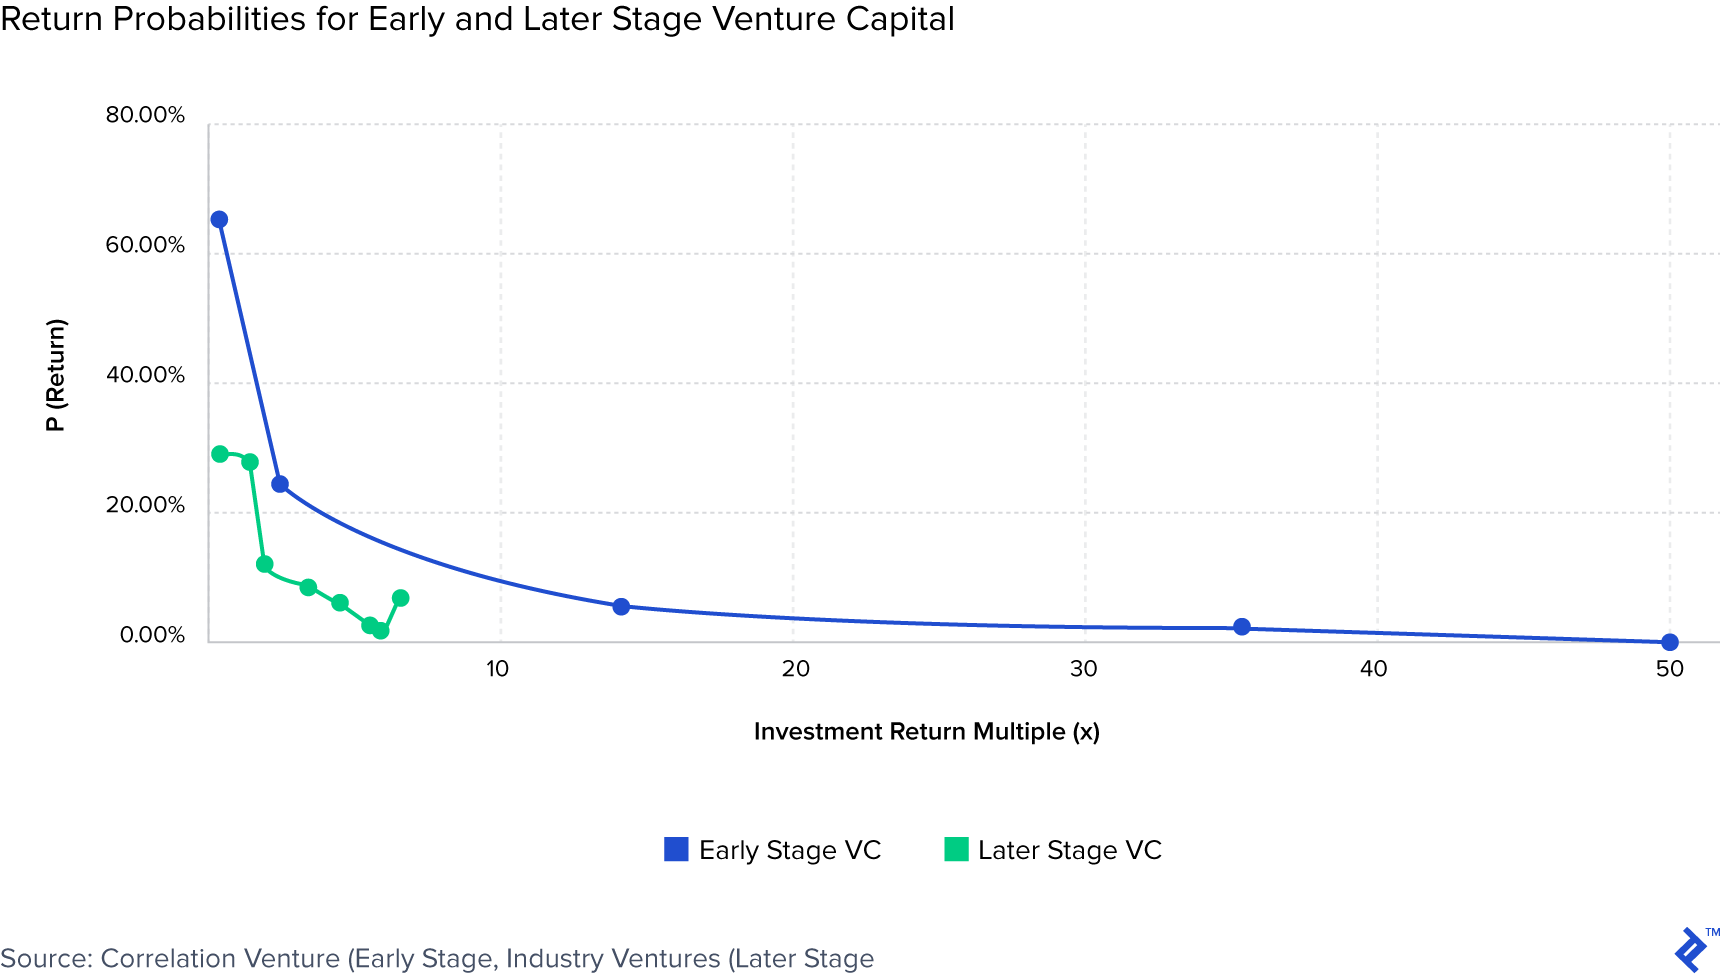 Chart showing return probabilities for early and later stage venture capital.